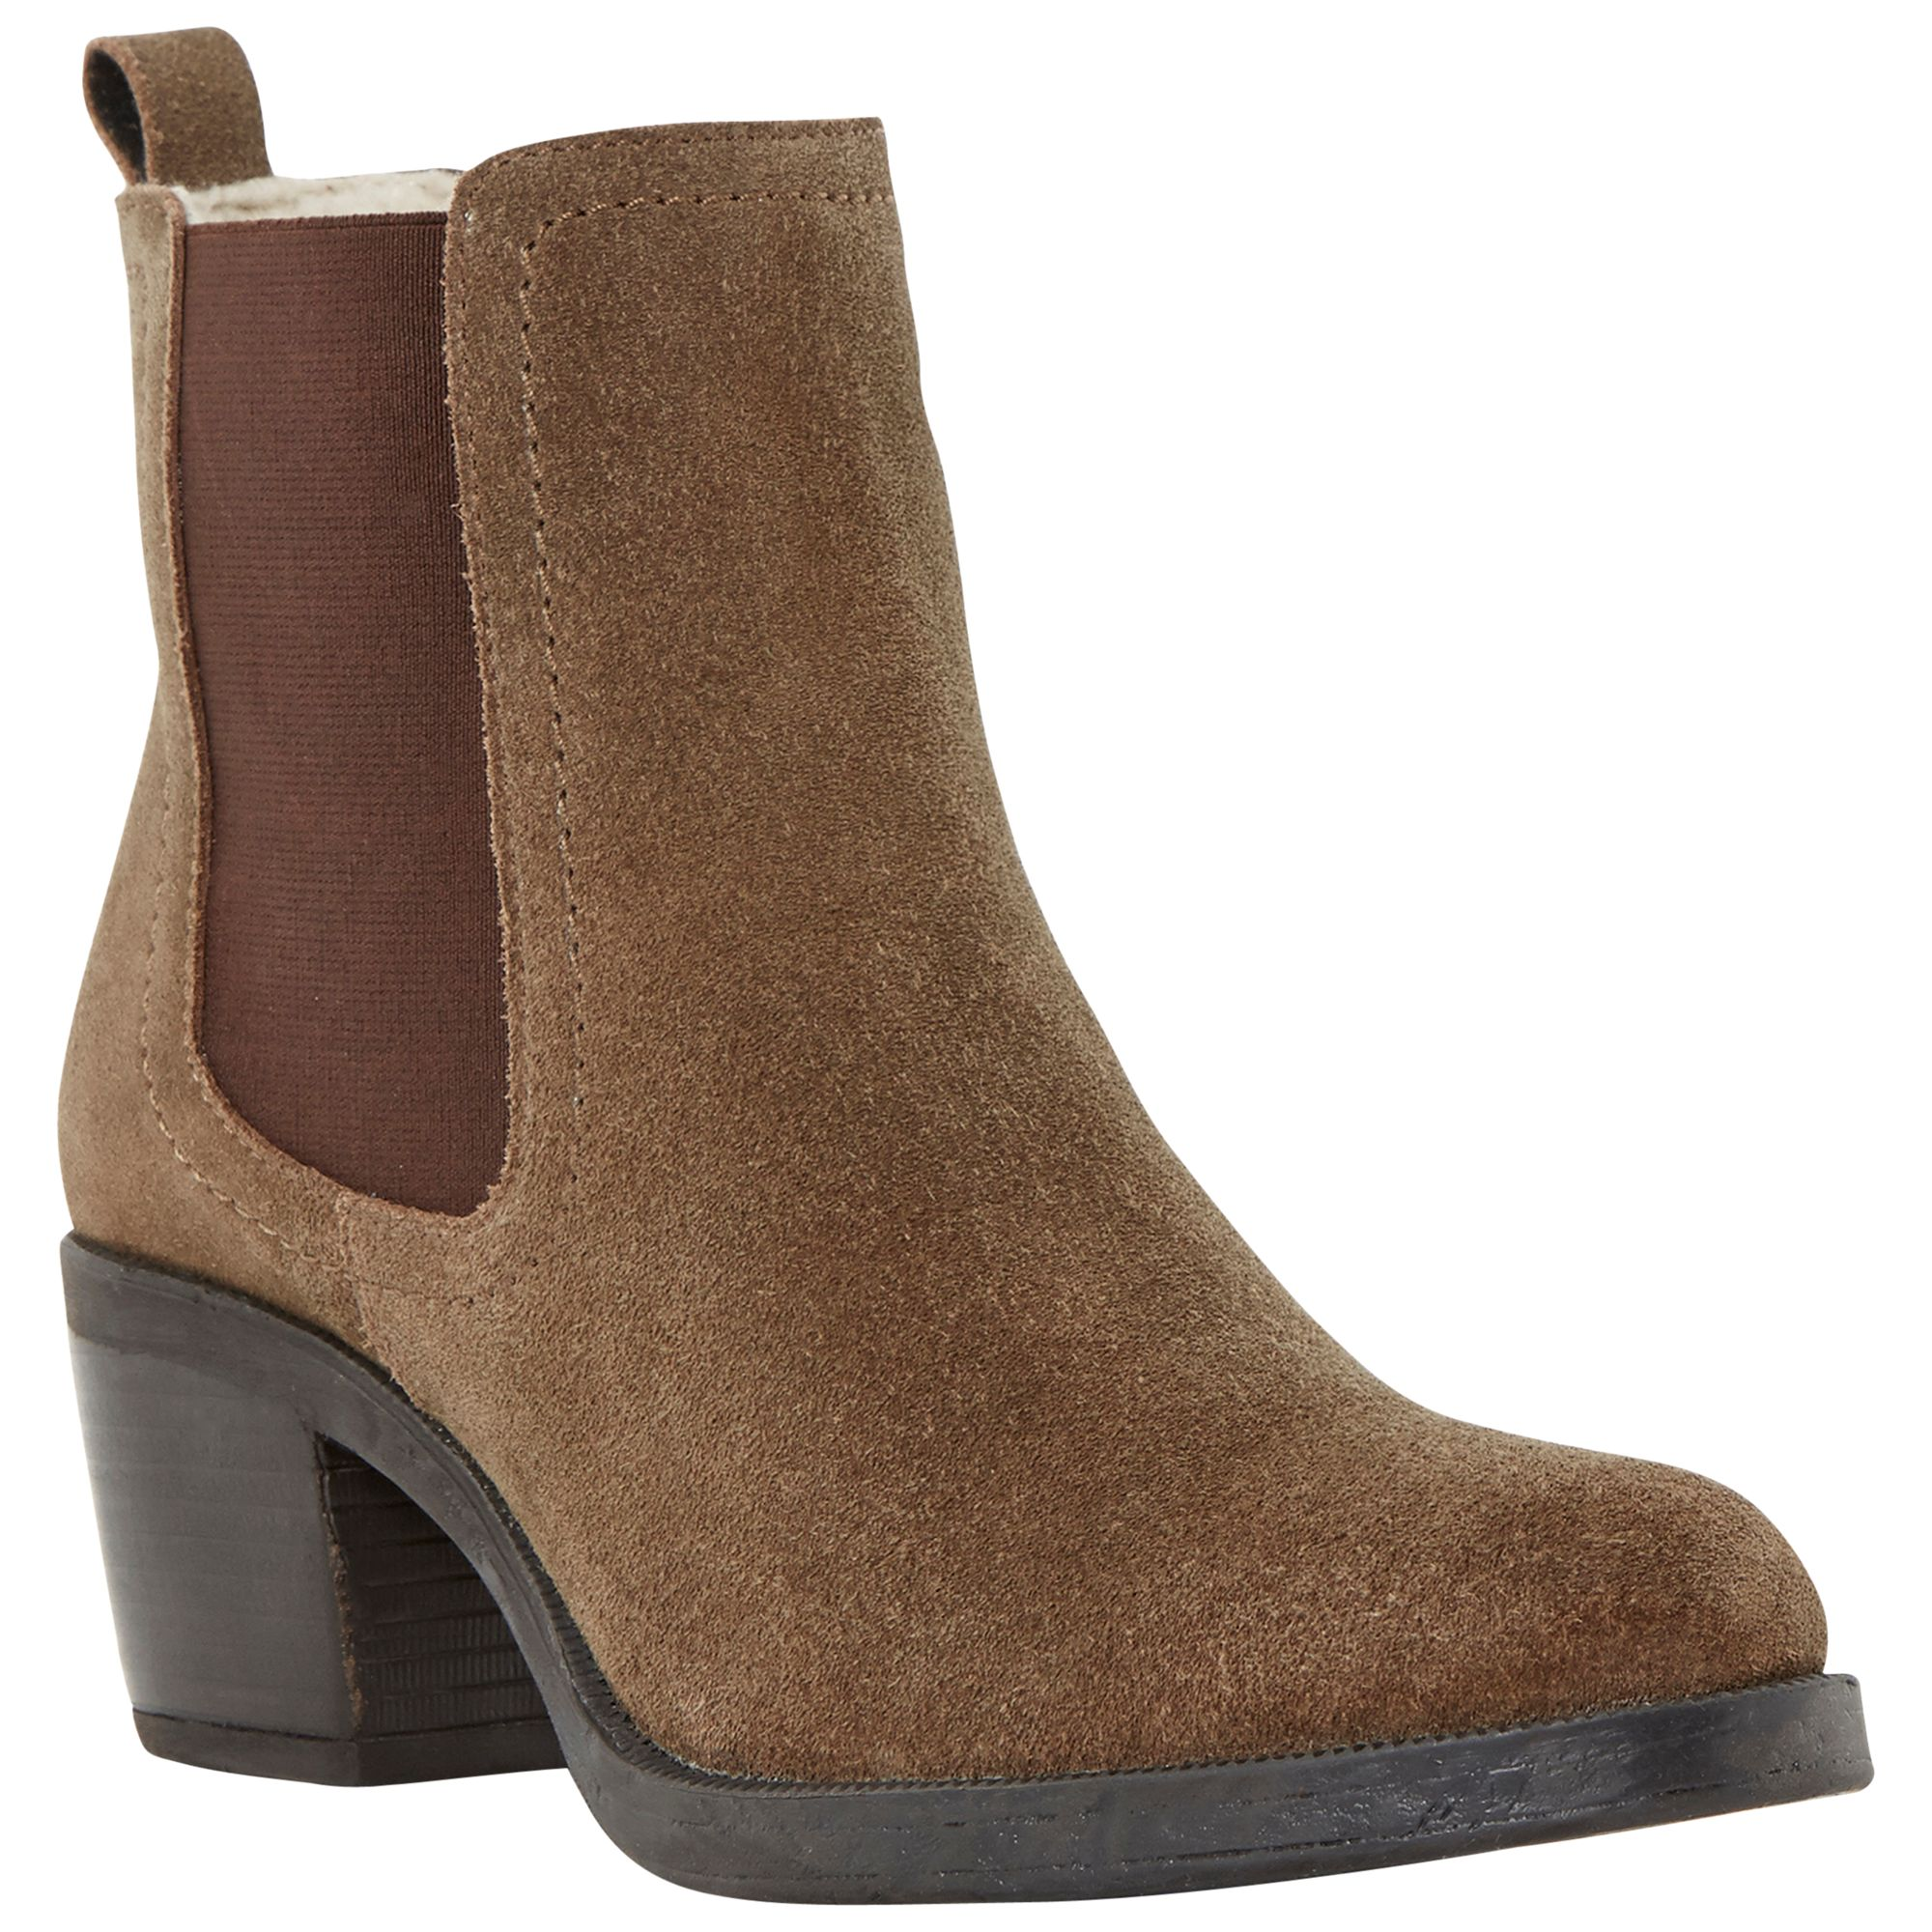 83f7183f105 Bertie Plush Suede Chelsea Boots at John Lewis & Partners